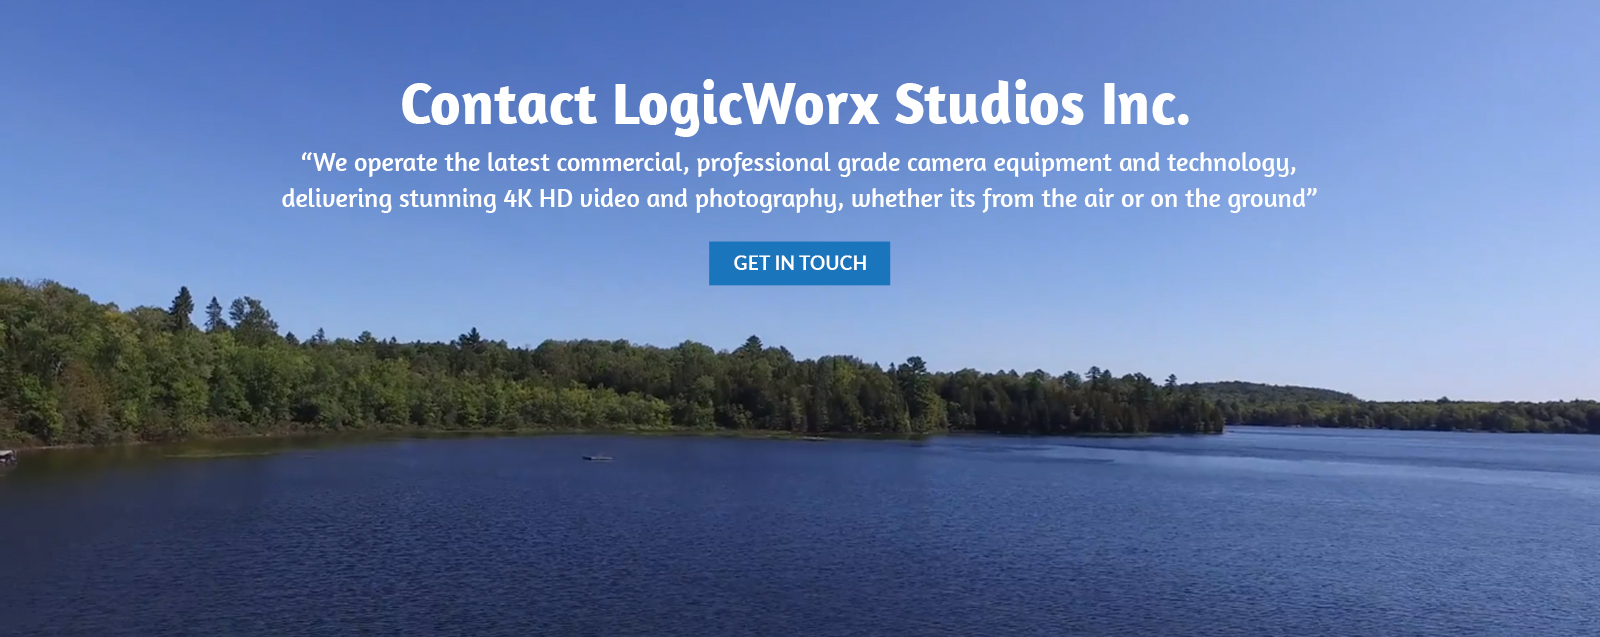 Contact LogicWorx Studios Inc. - Professional Video Production Services Markham